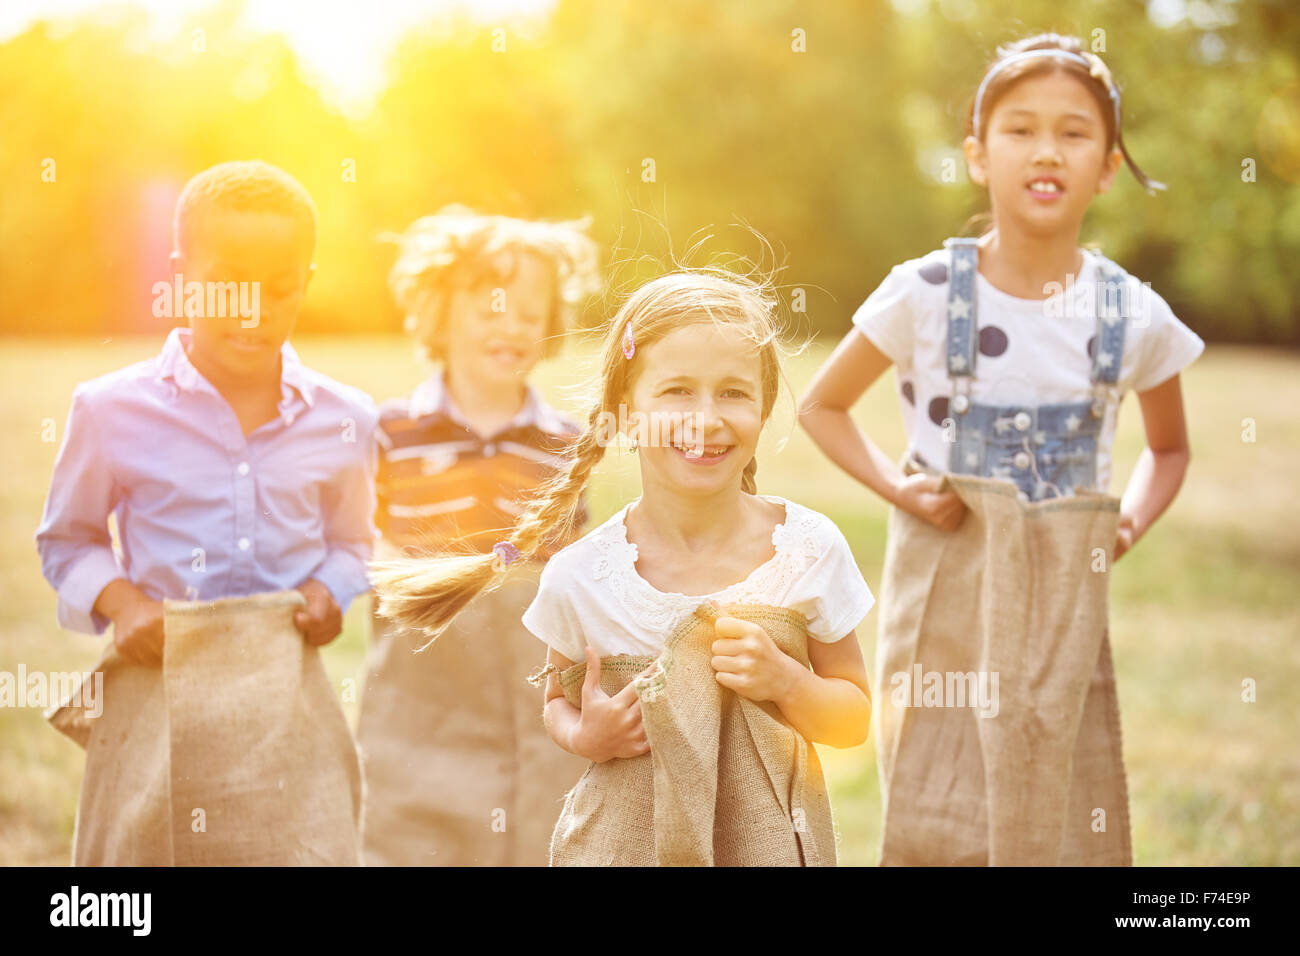 Group of kids at sack race smiling and having fun - Stock Image